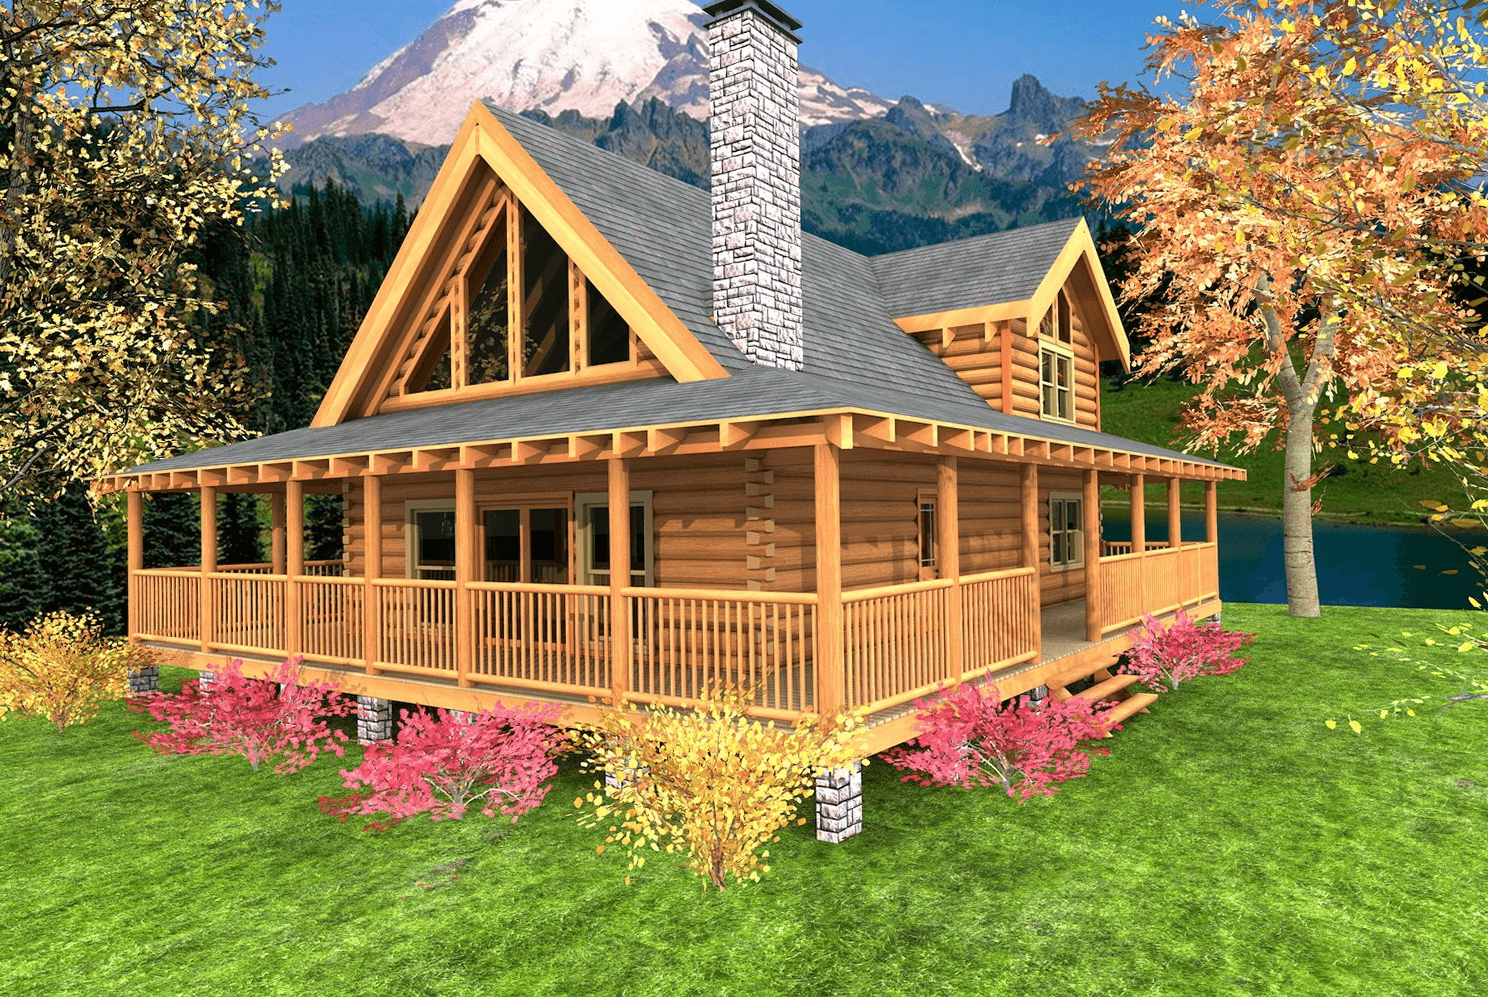 Wrap around porch house plans for small modular home